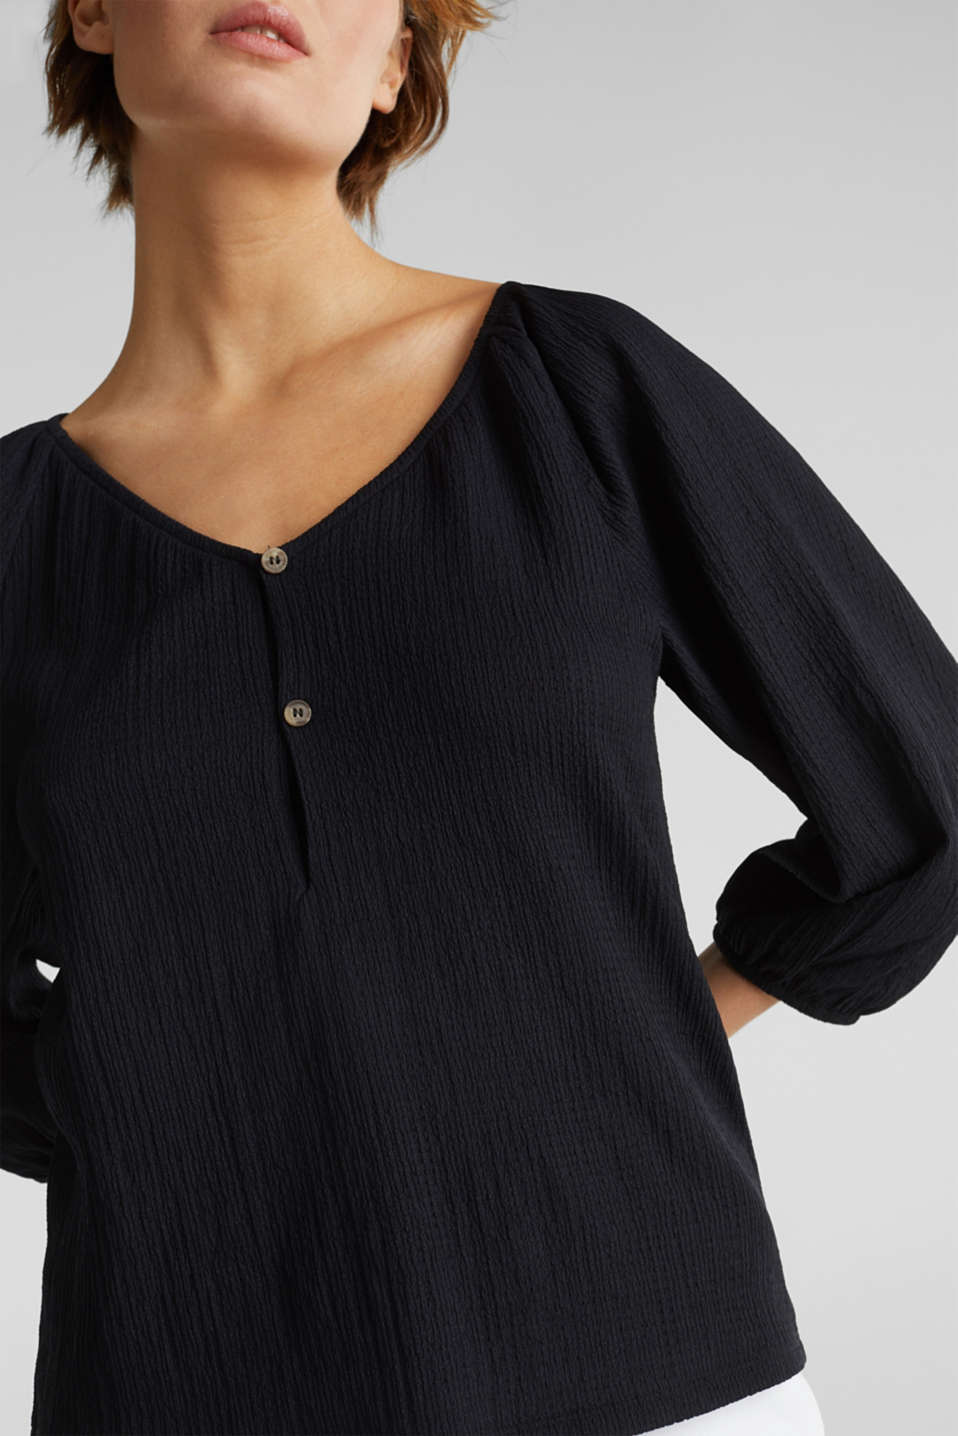 Textured blouse top, recycled, BLACK, detail image number 2